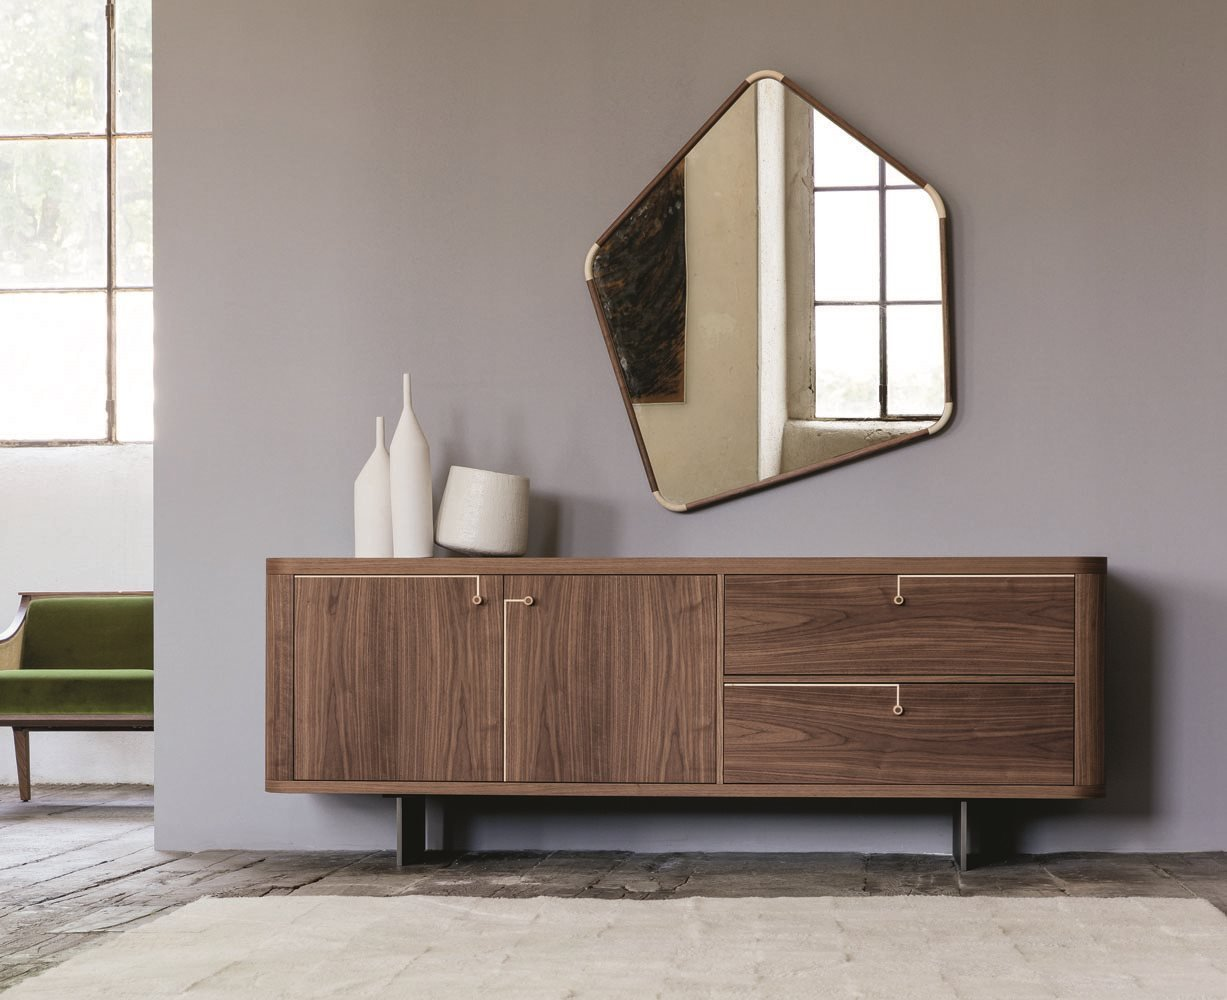 Rondo' 1 Cabinet from Porada, designed by U. Asnago